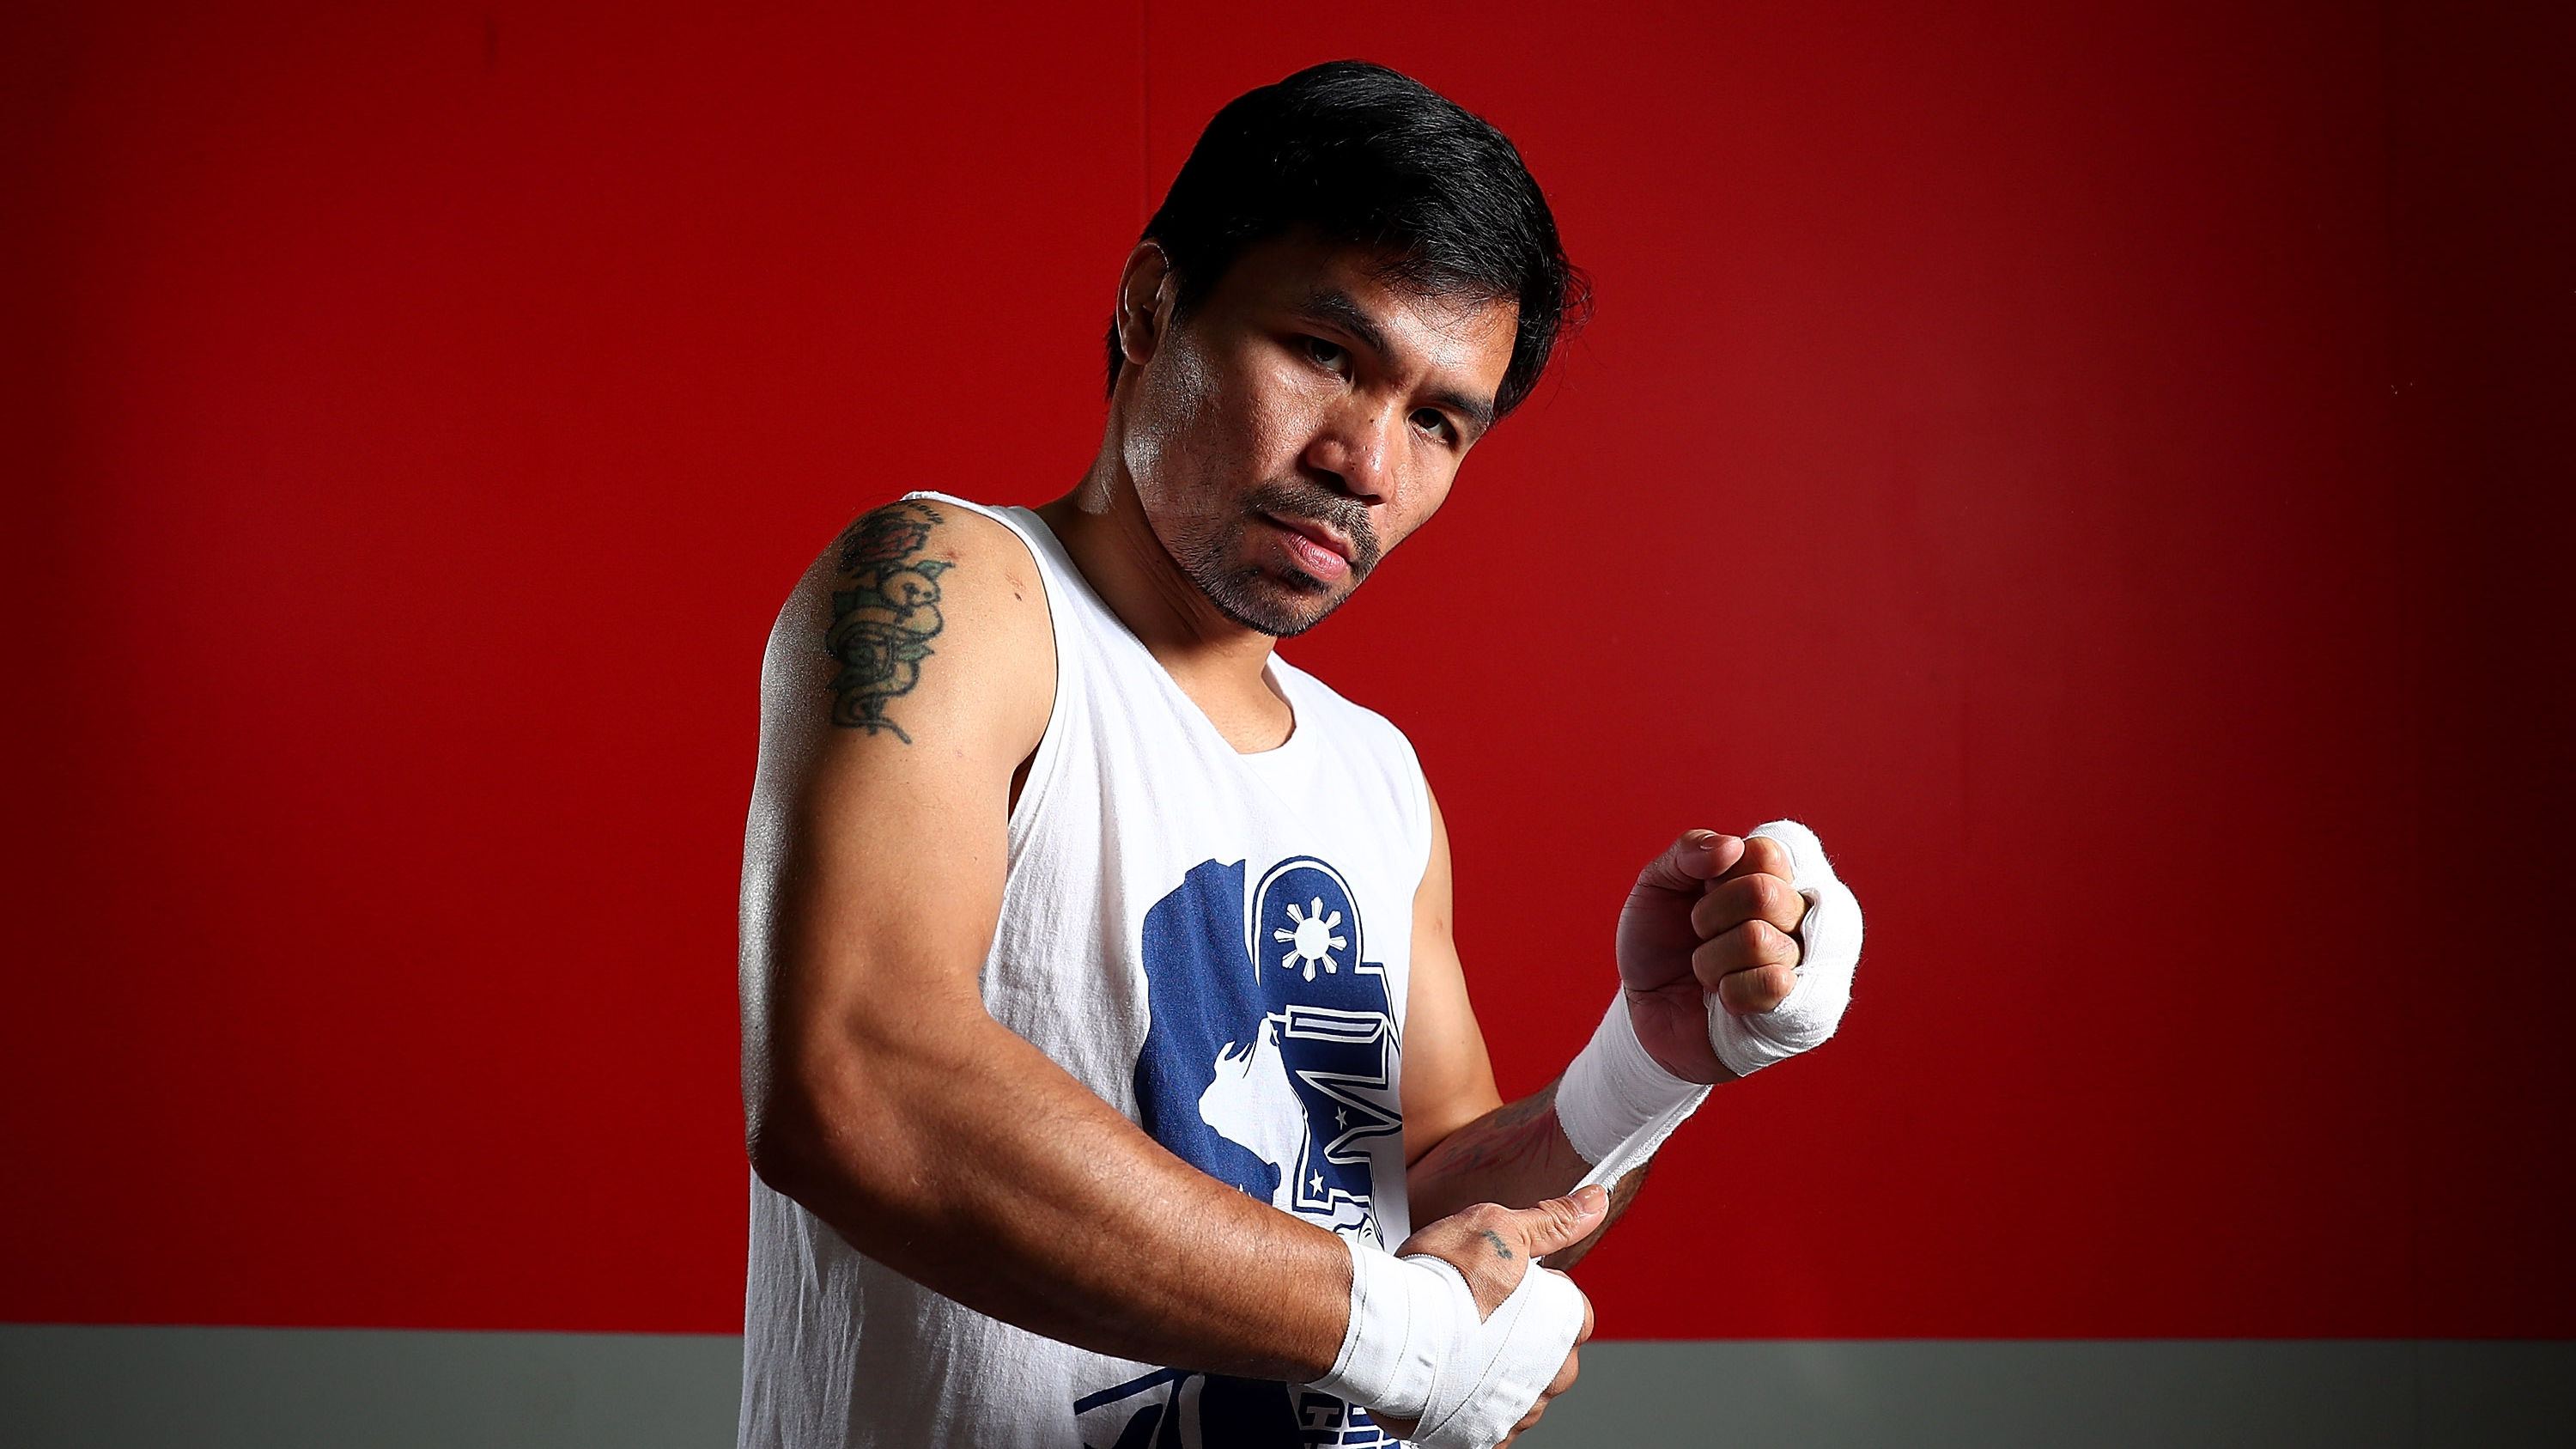 Manny Pacquiao on next rival: Mikey Garcia or Terence Crawfo